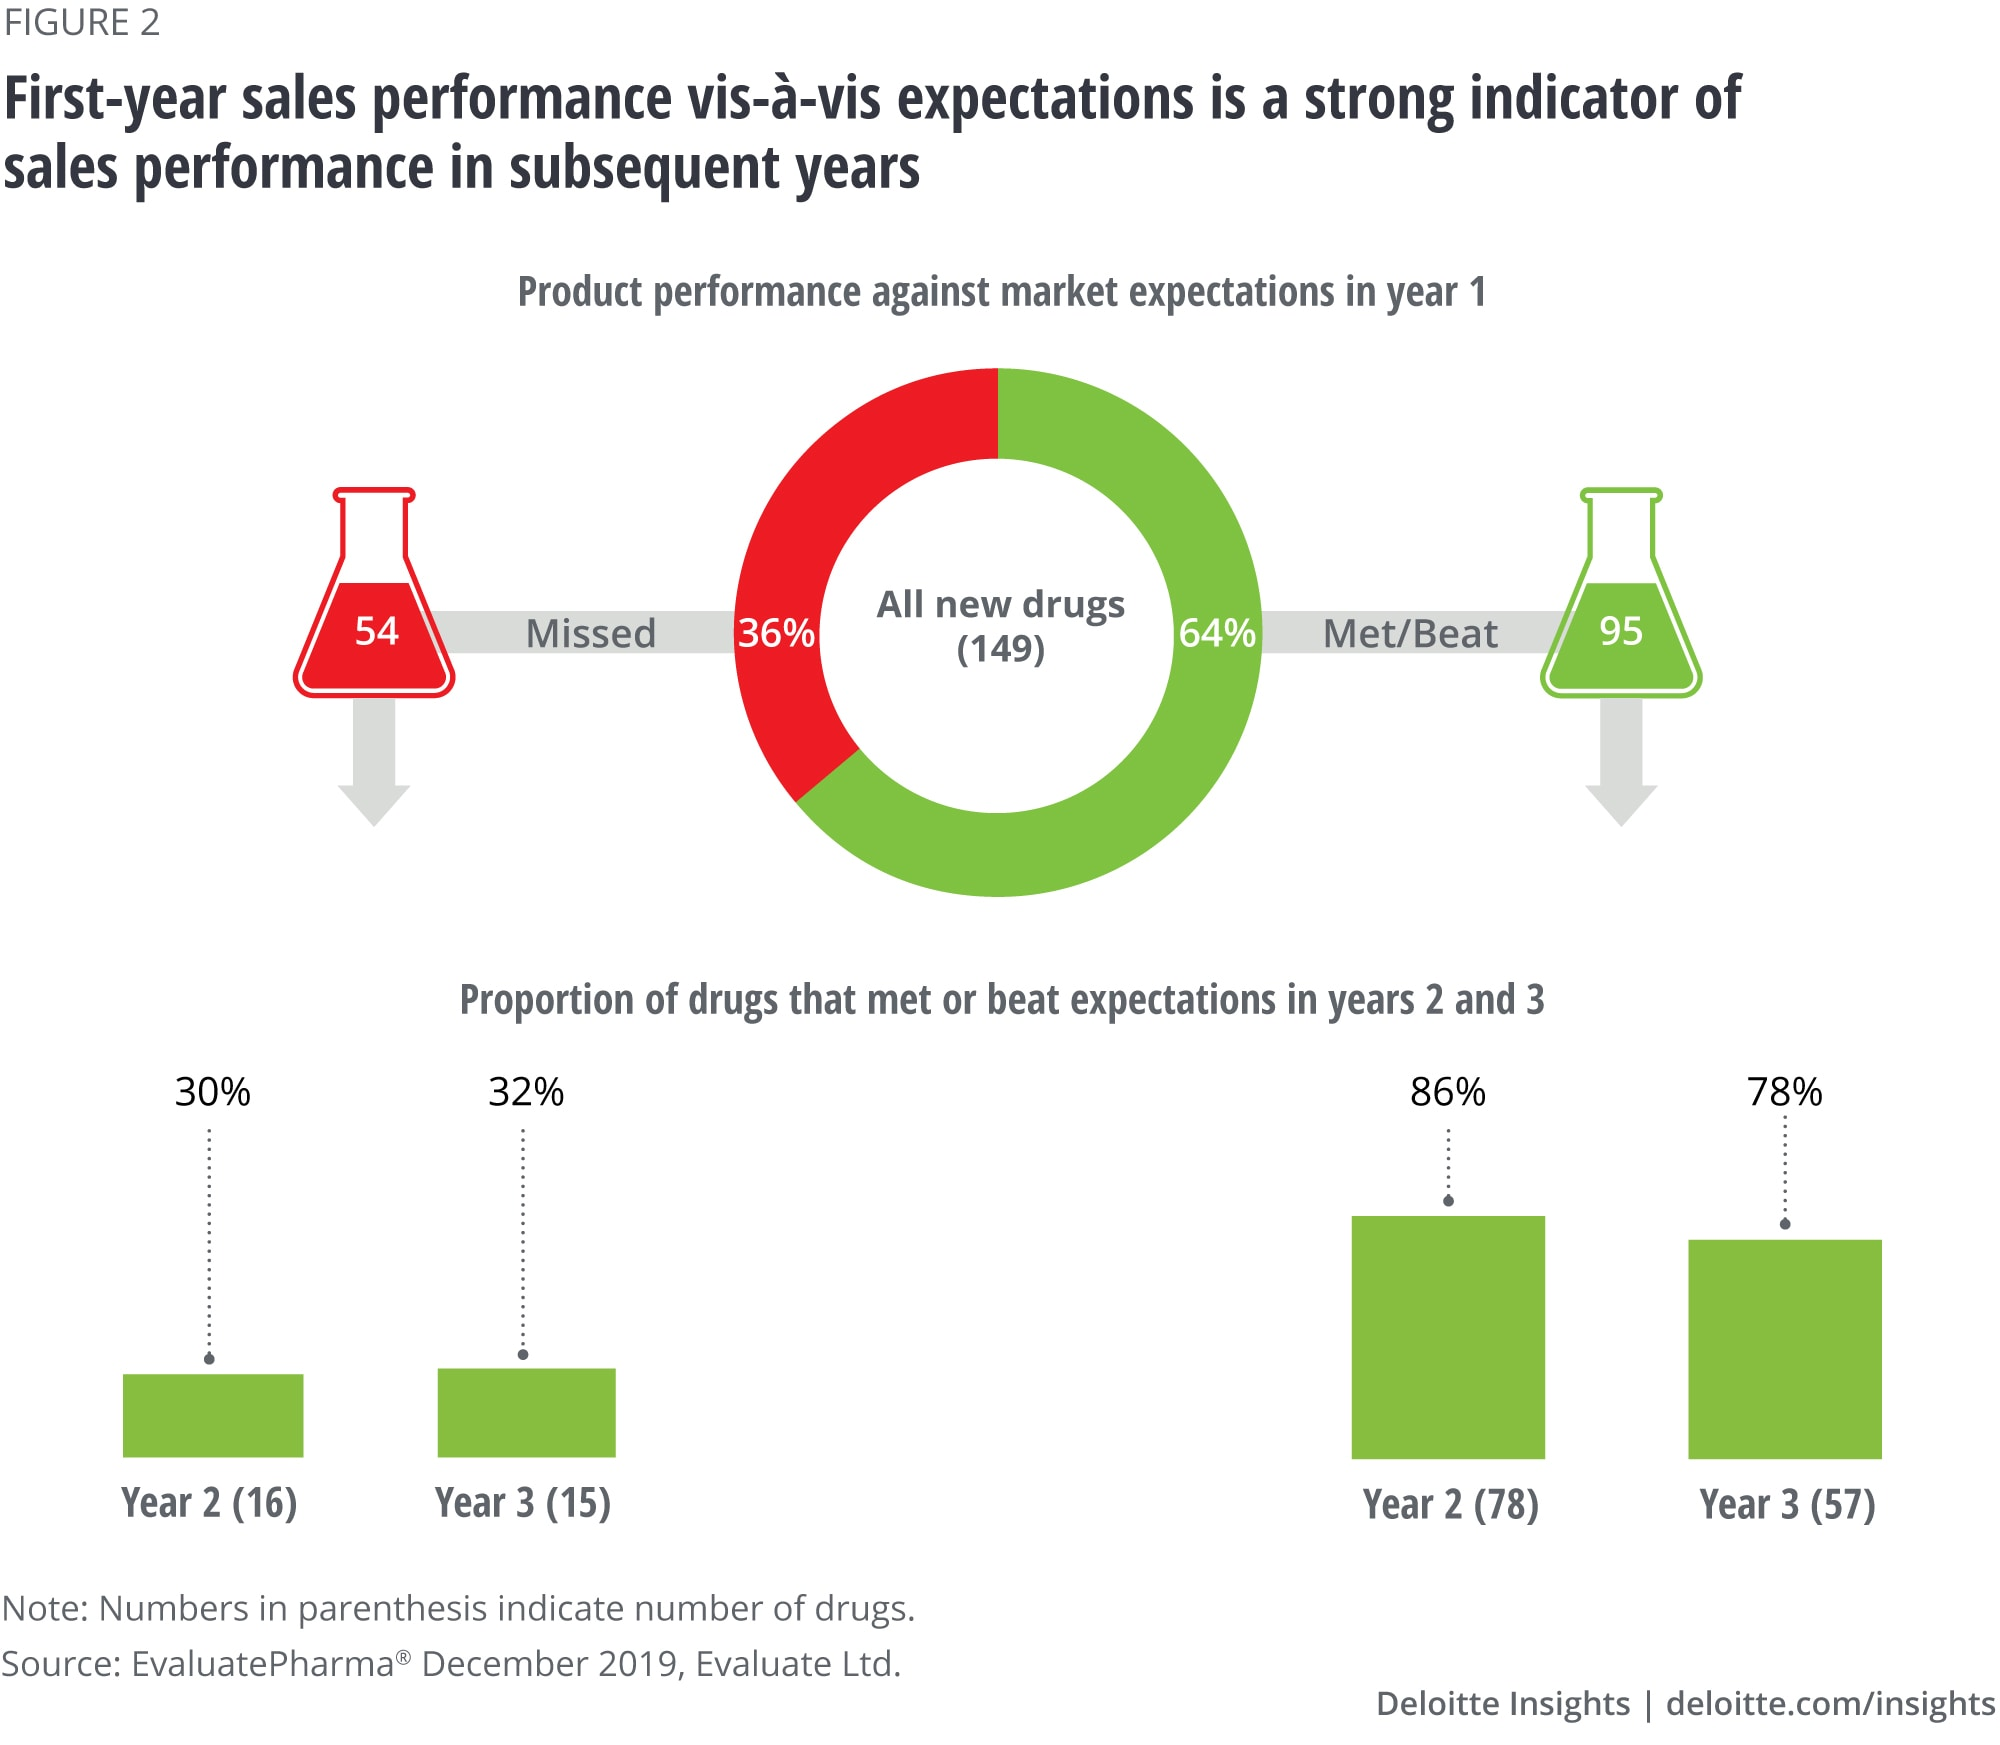 First-year sales performance vis-à-vis expectations is a strong indicator of sales performance in subsequent years